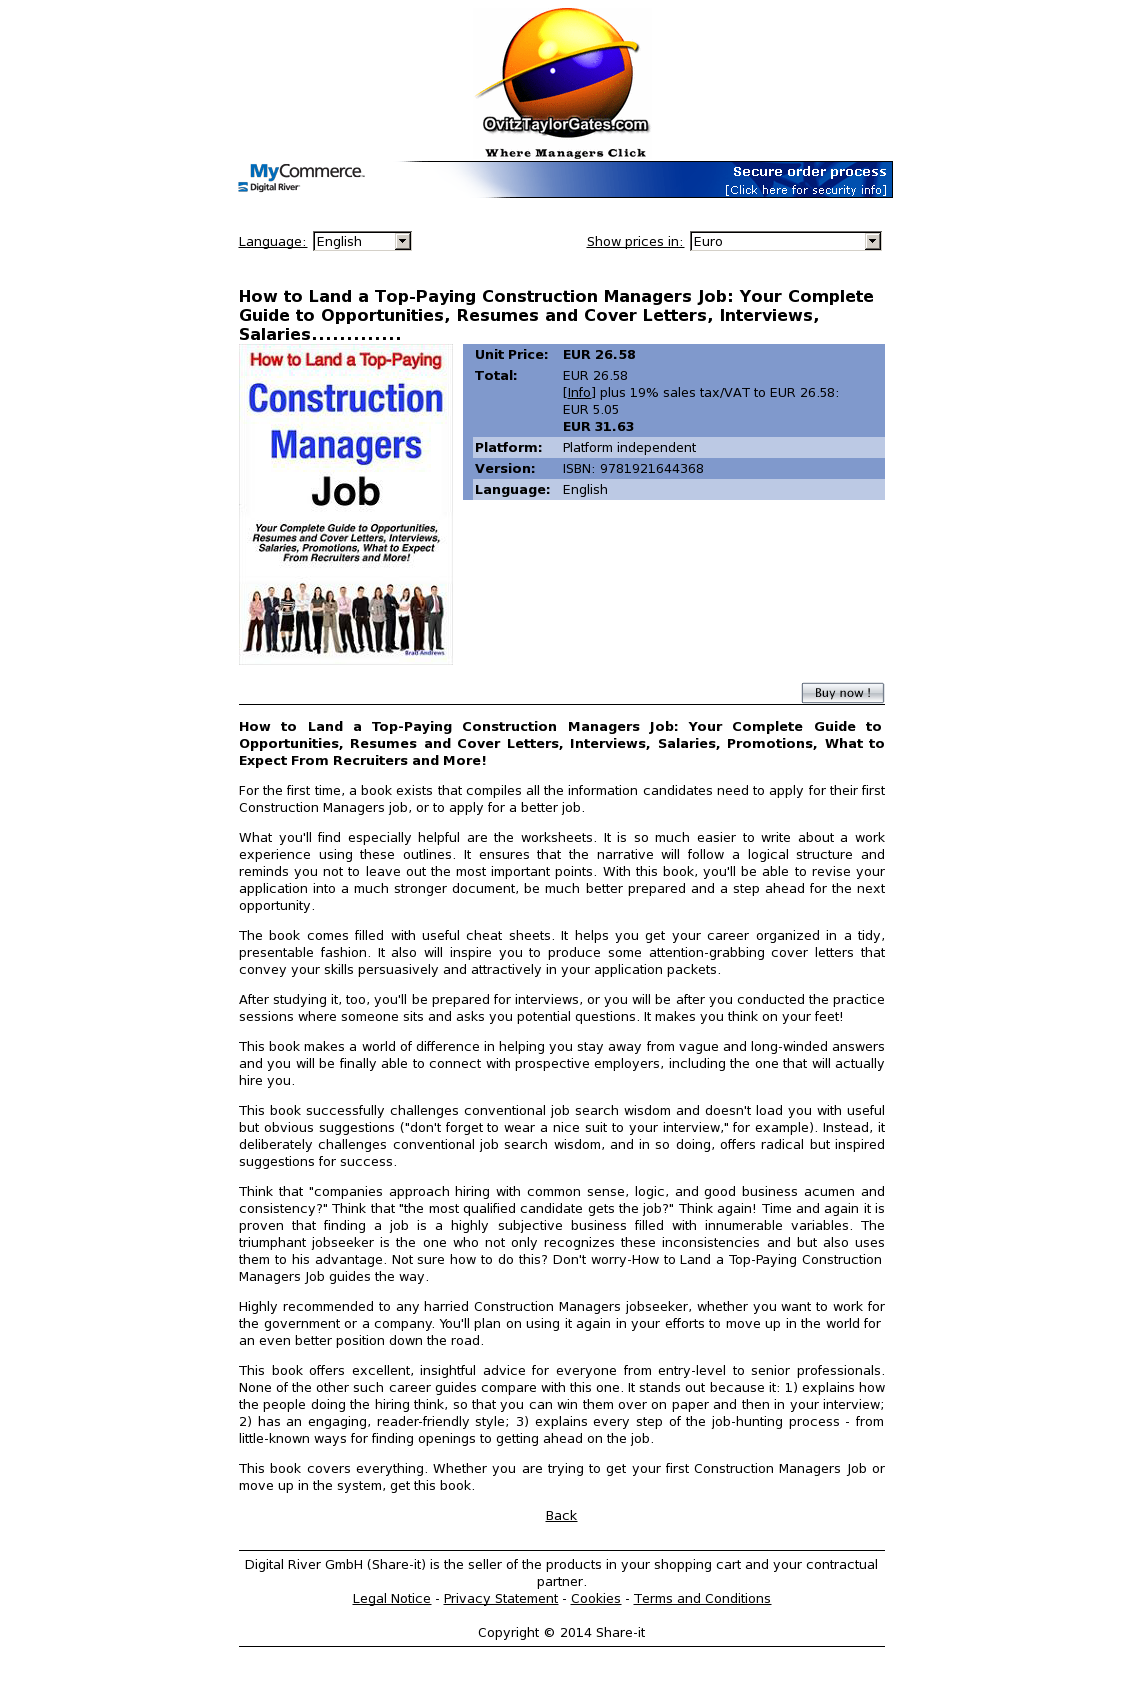 How to Land a Top-Paying Construction Managers Job: Your Complete Guide to Opportunities, Resumes and Cover Letters, Interviews, Salaries.............